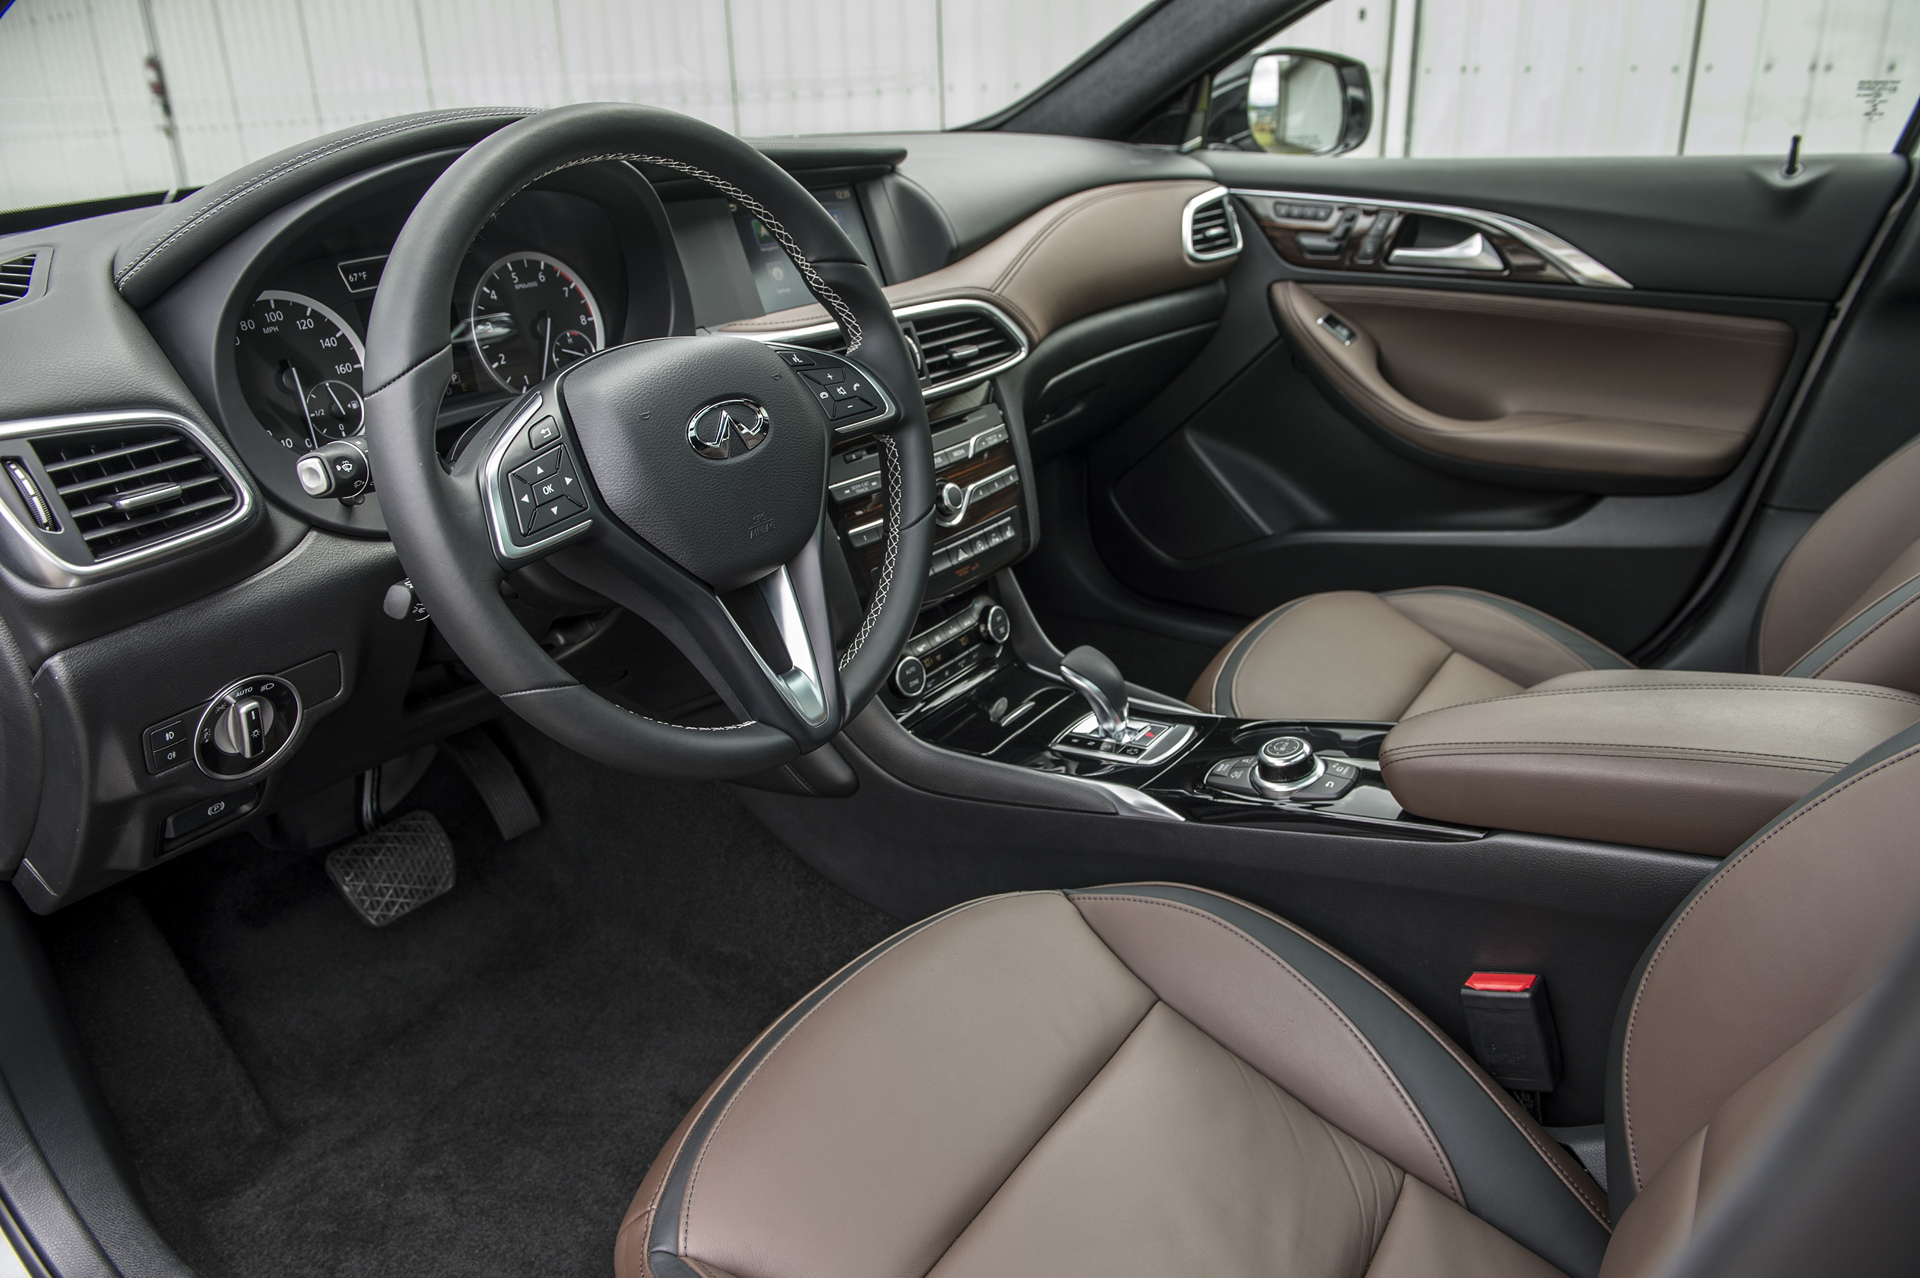 2017 Infiniti QX30 AWD © Nissan Motor Co., Ltd.